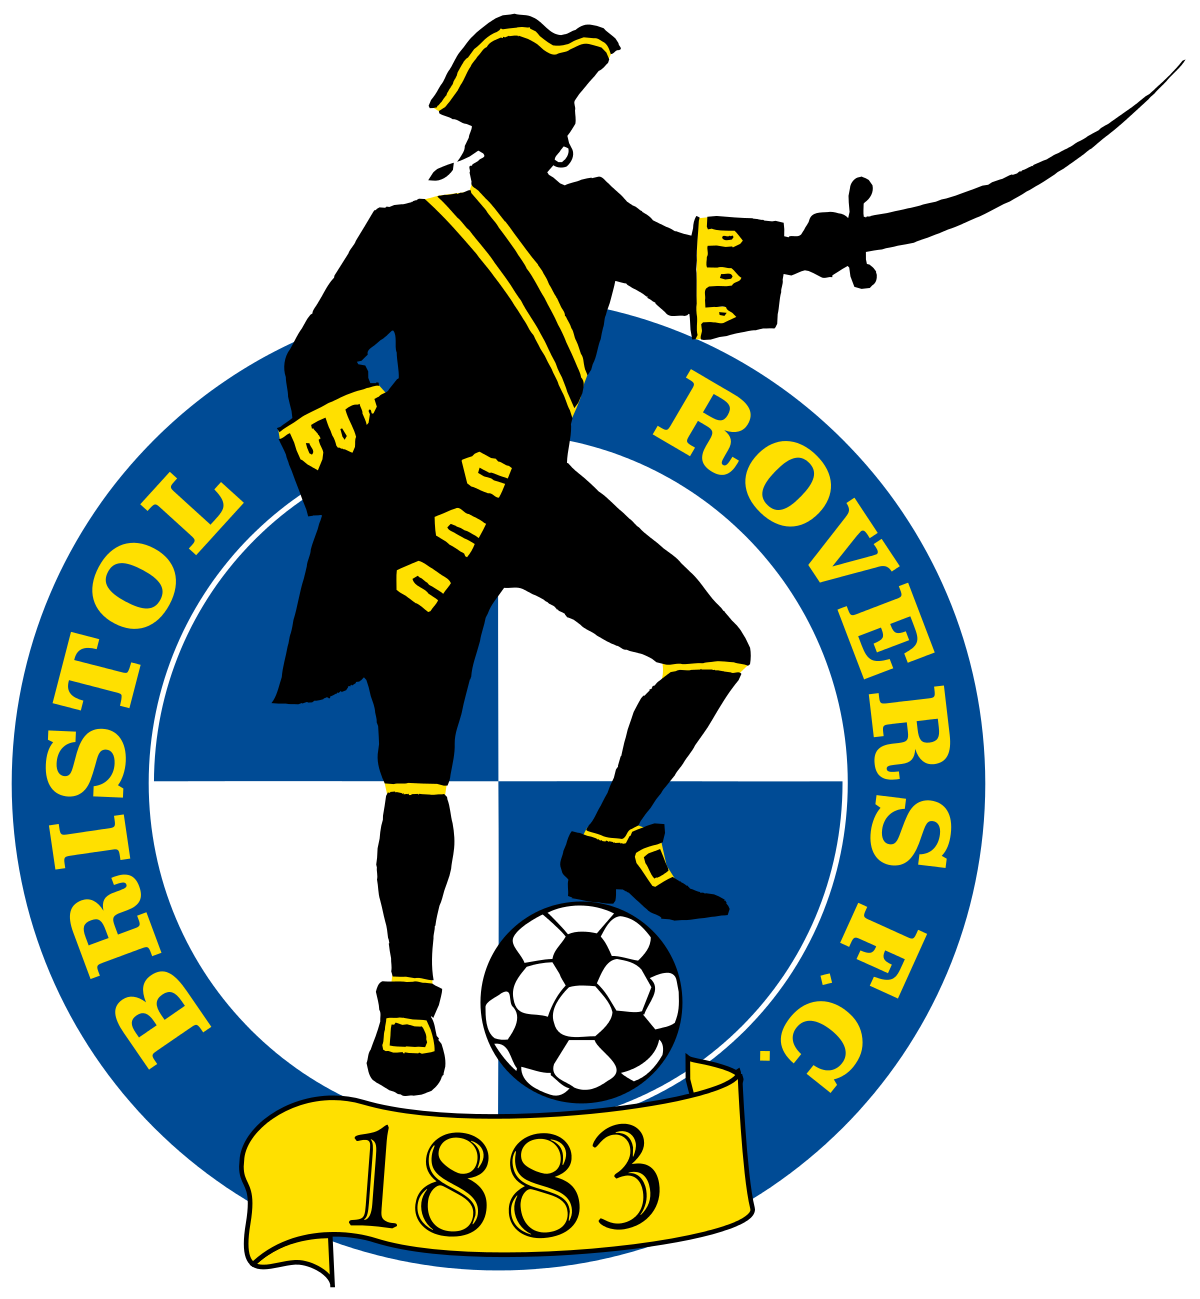 1200px-Bristol_Rovers_F.C._logo.svg.png